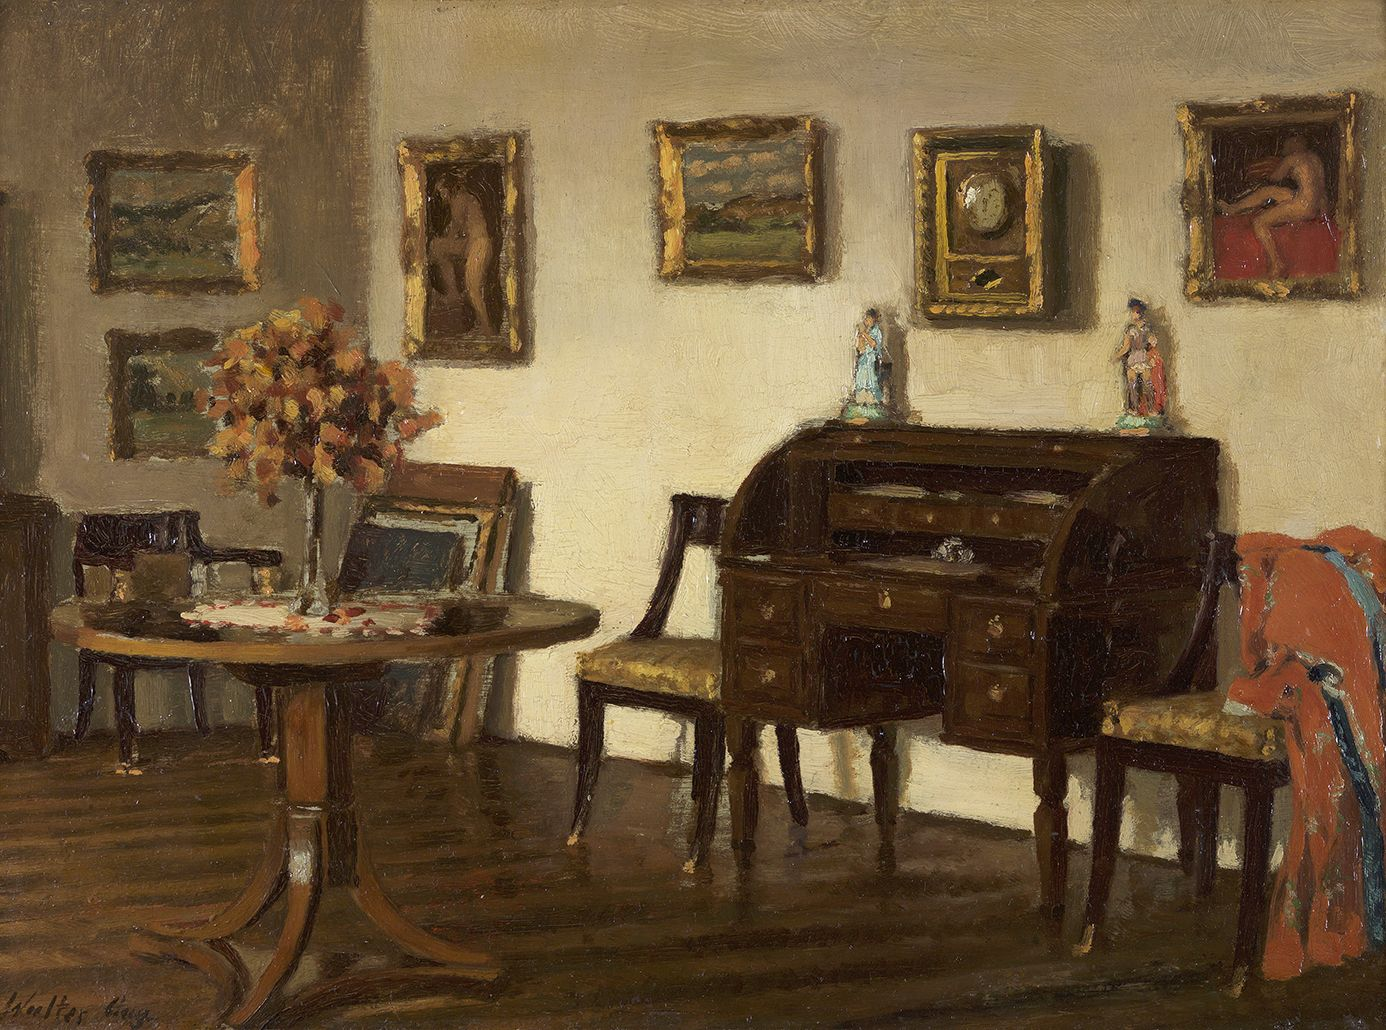 Walter Gay (1856-1937), Studio Interior